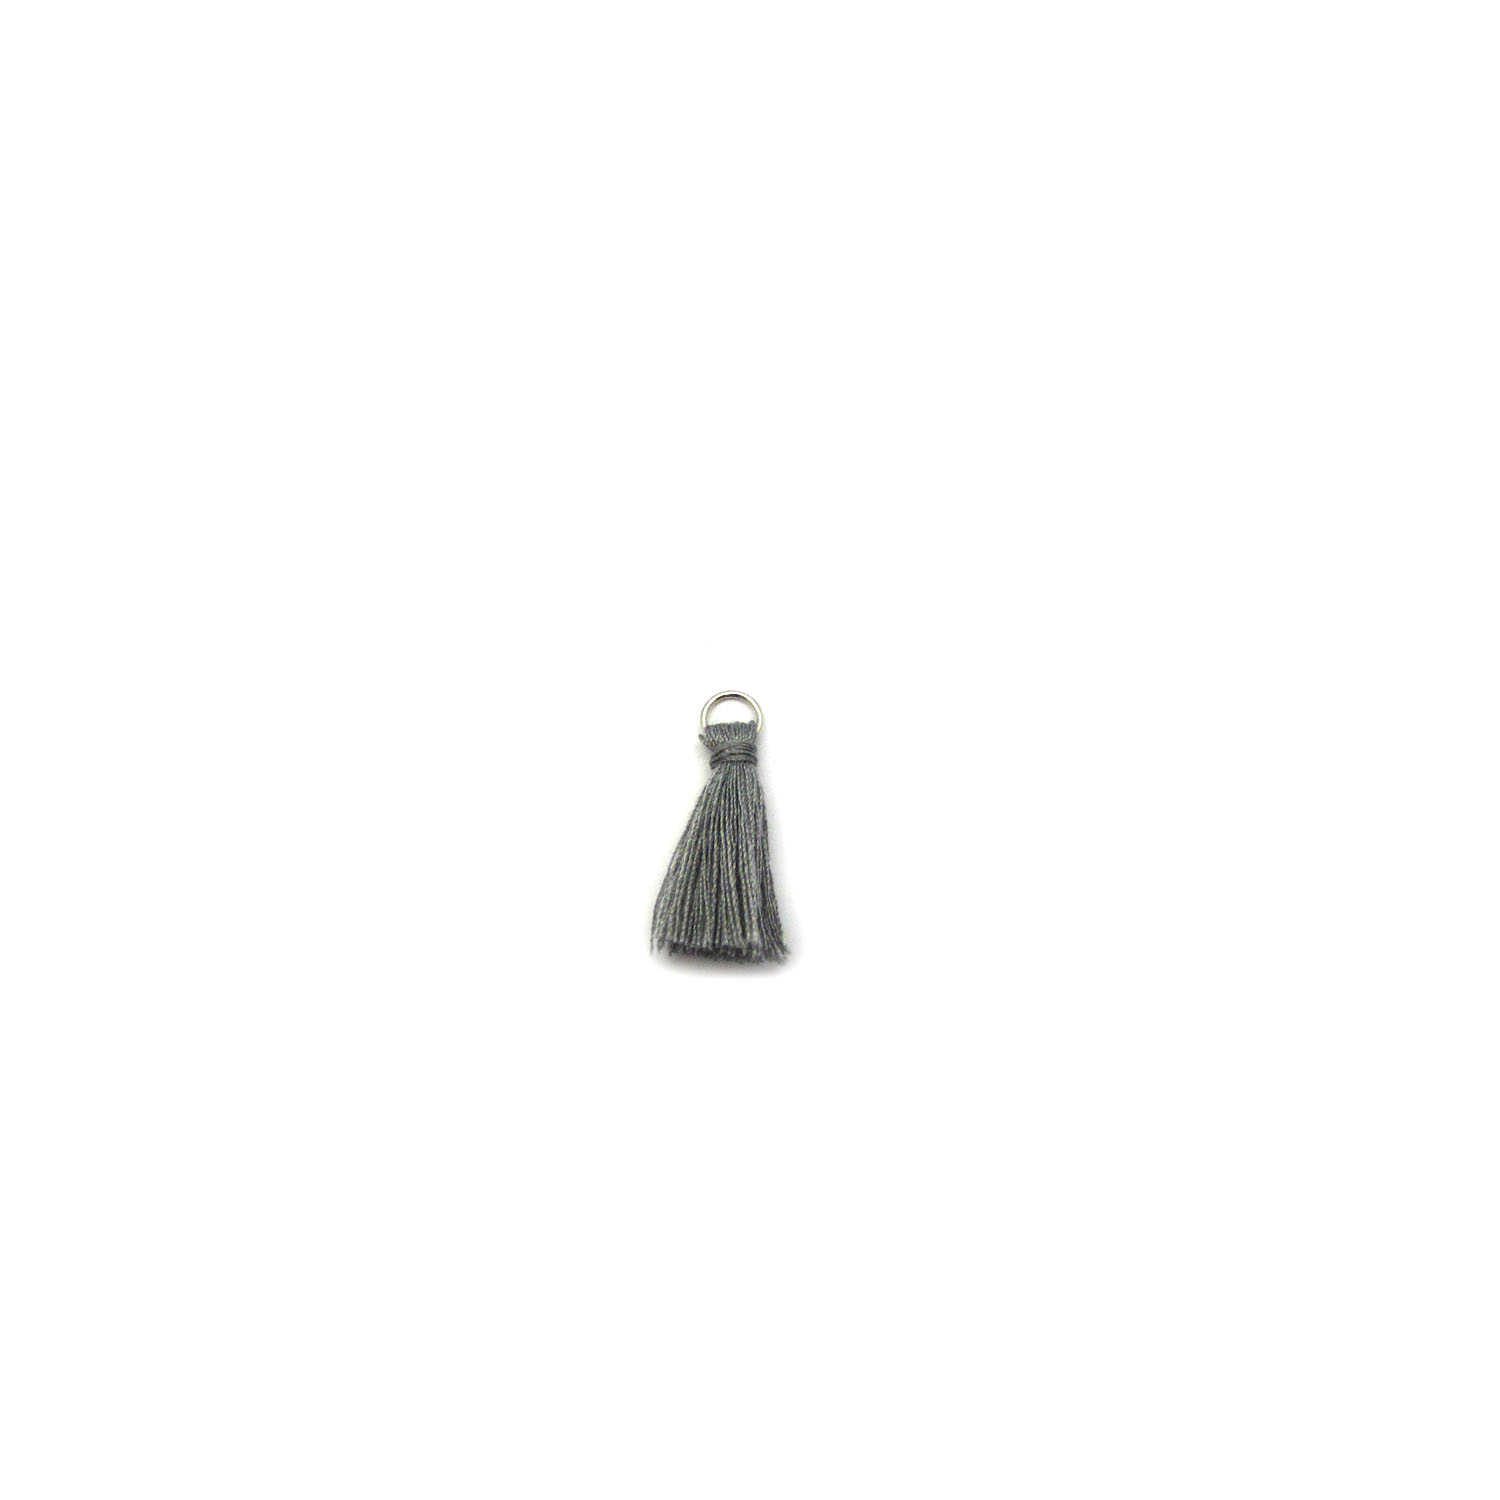 3cm cotton tassel with base metal silver jump ring - grey